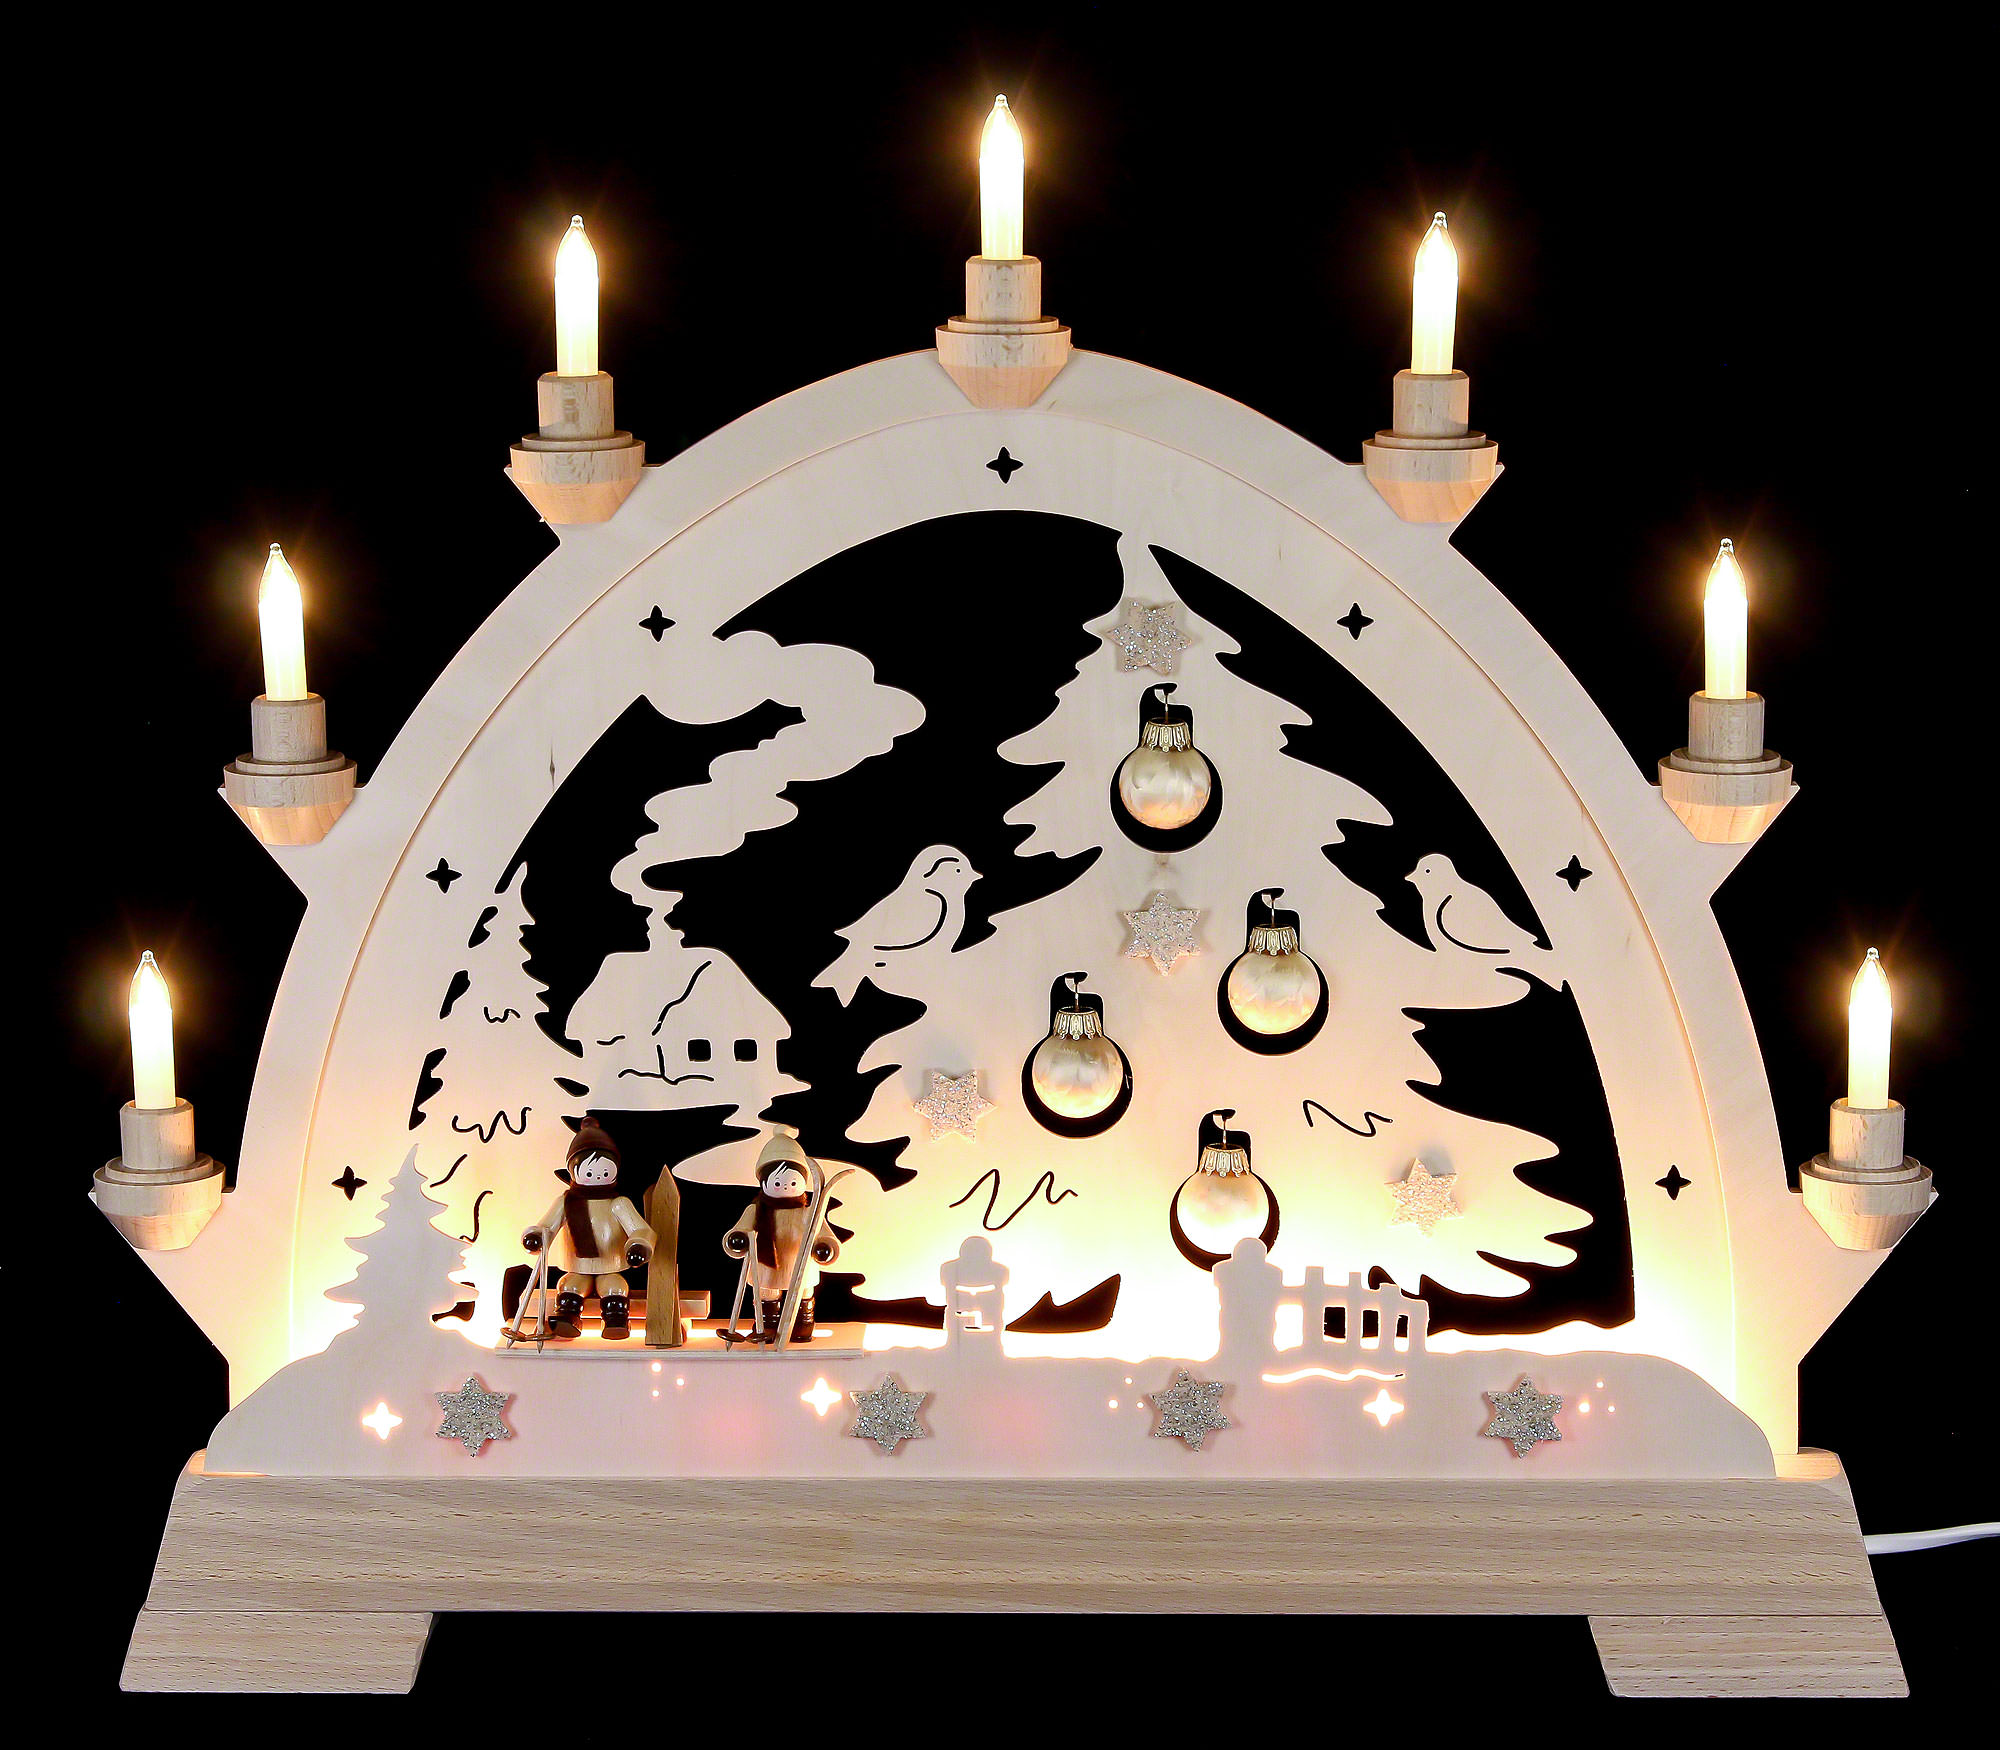 Candle arch christmas tree 40x43cm 16x16in by kwo for Arch candle christmas decoration